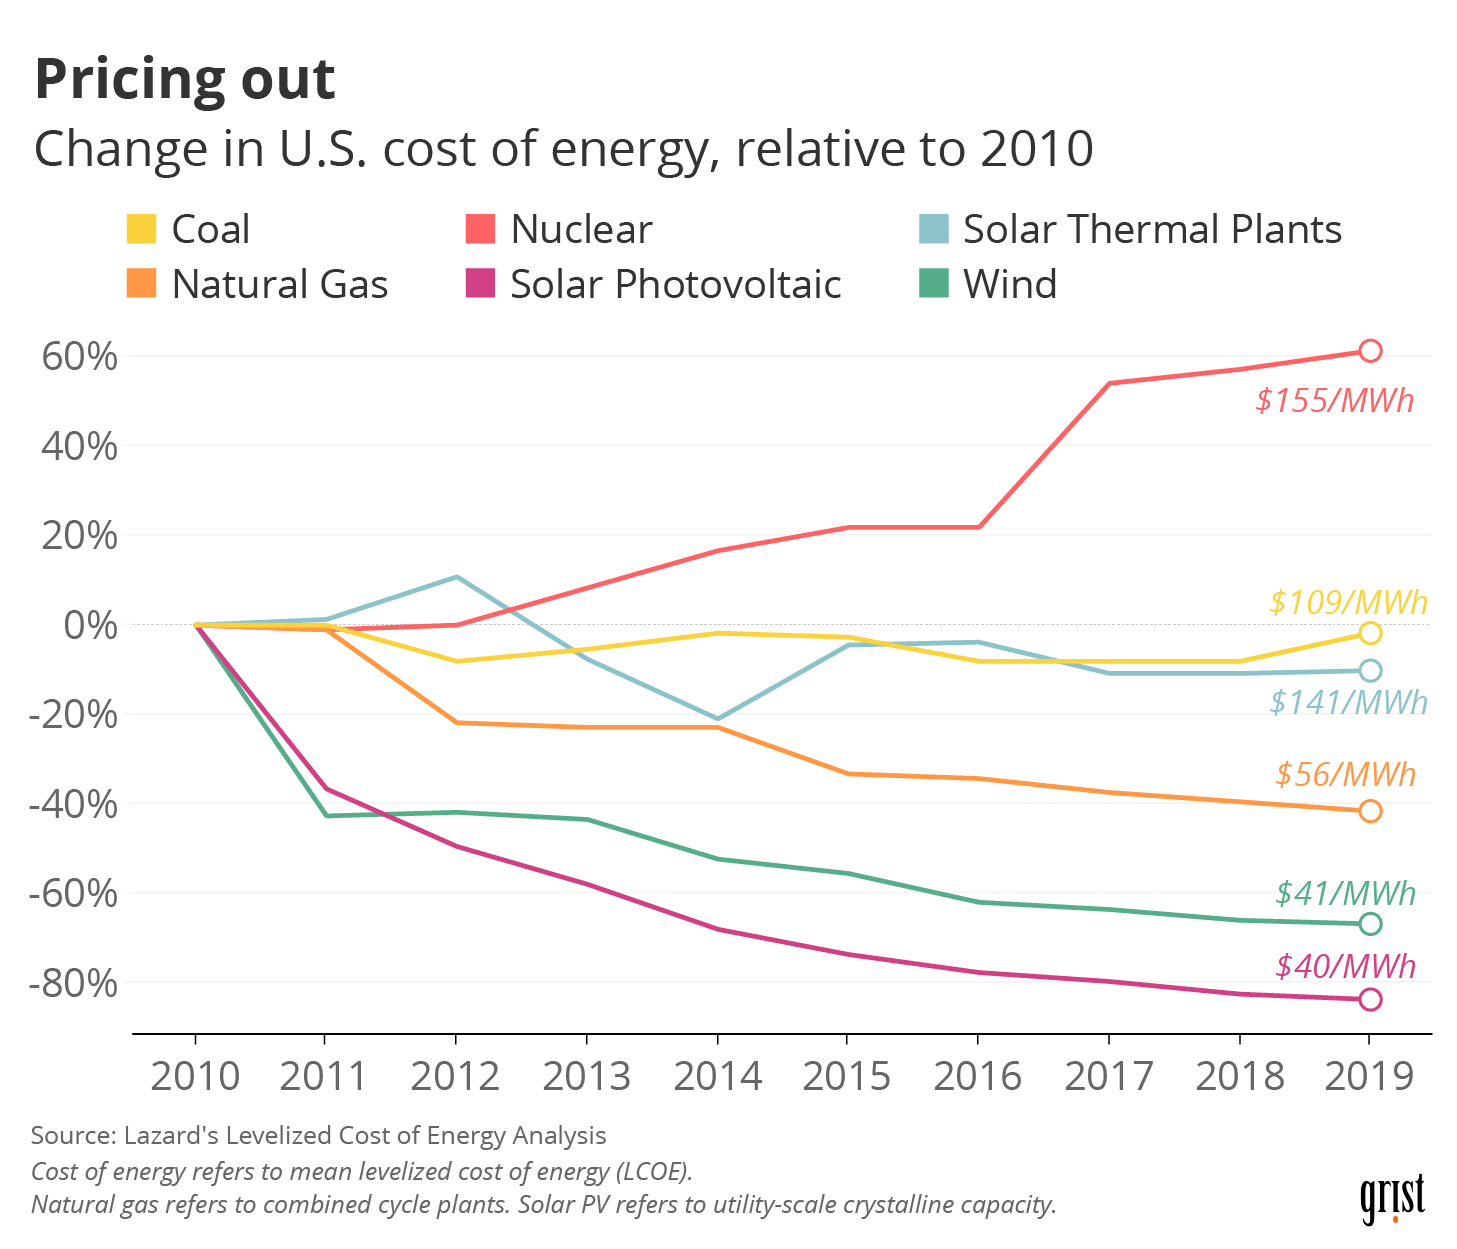 Line charts showing the percent change in the levelized cost of energy by source between 2010 and 2019